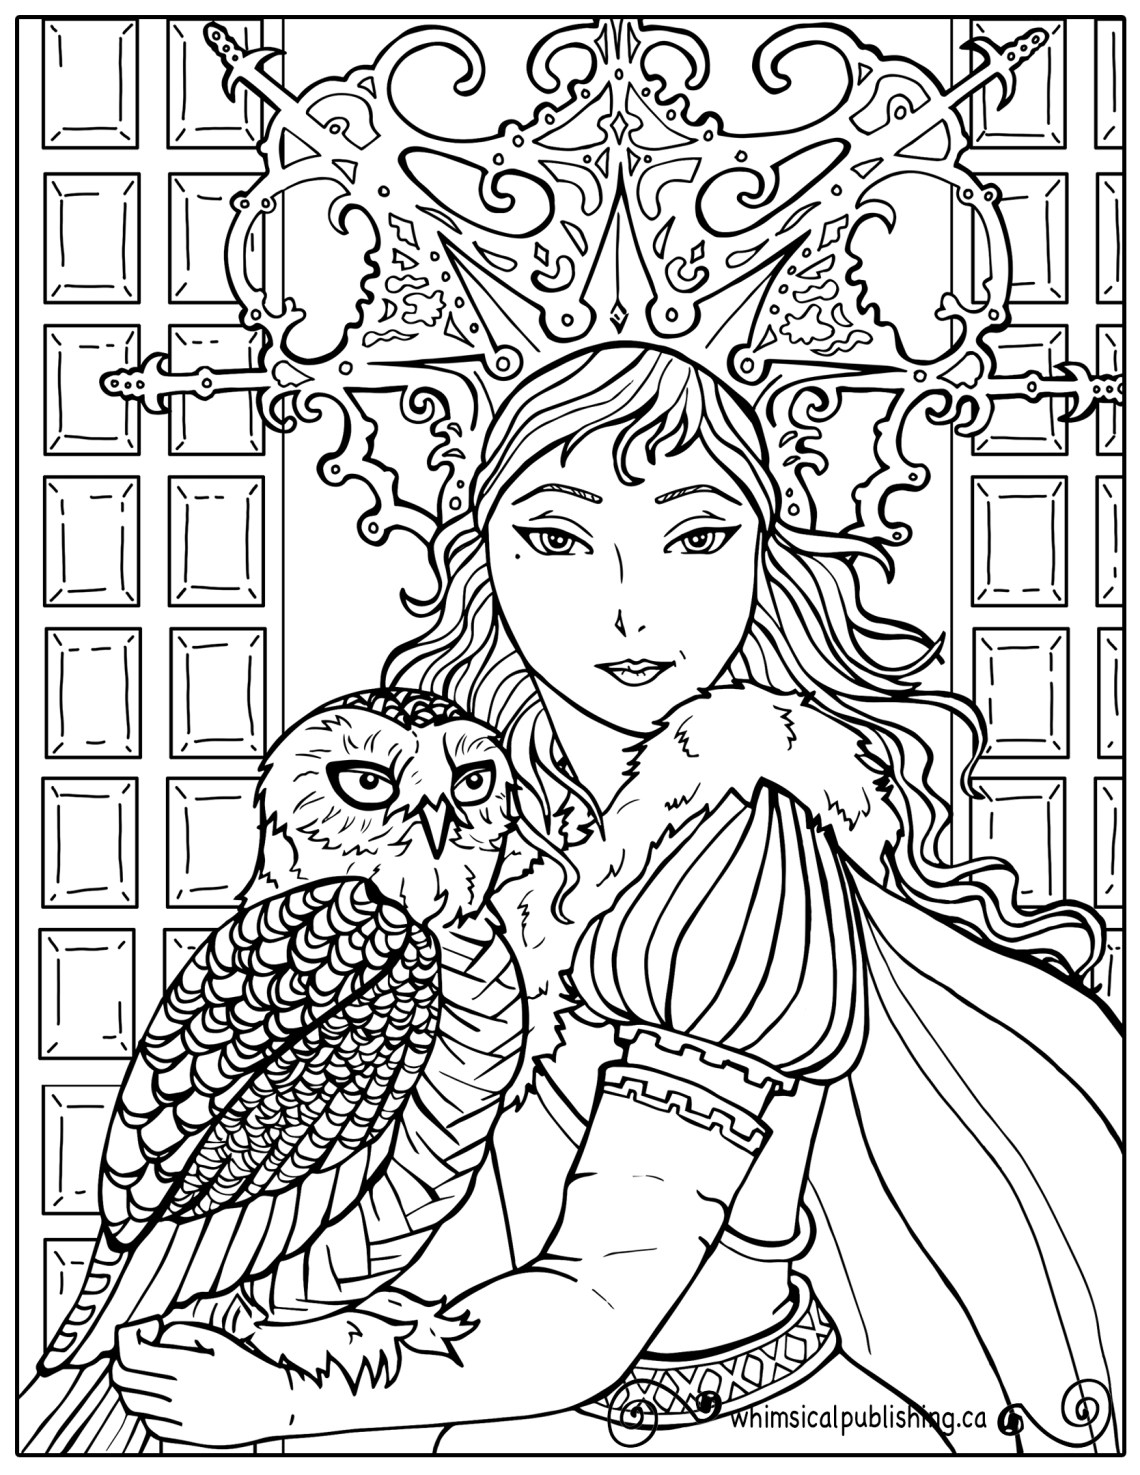 Free Colouring Pages | free printable coloring pages for adults funny